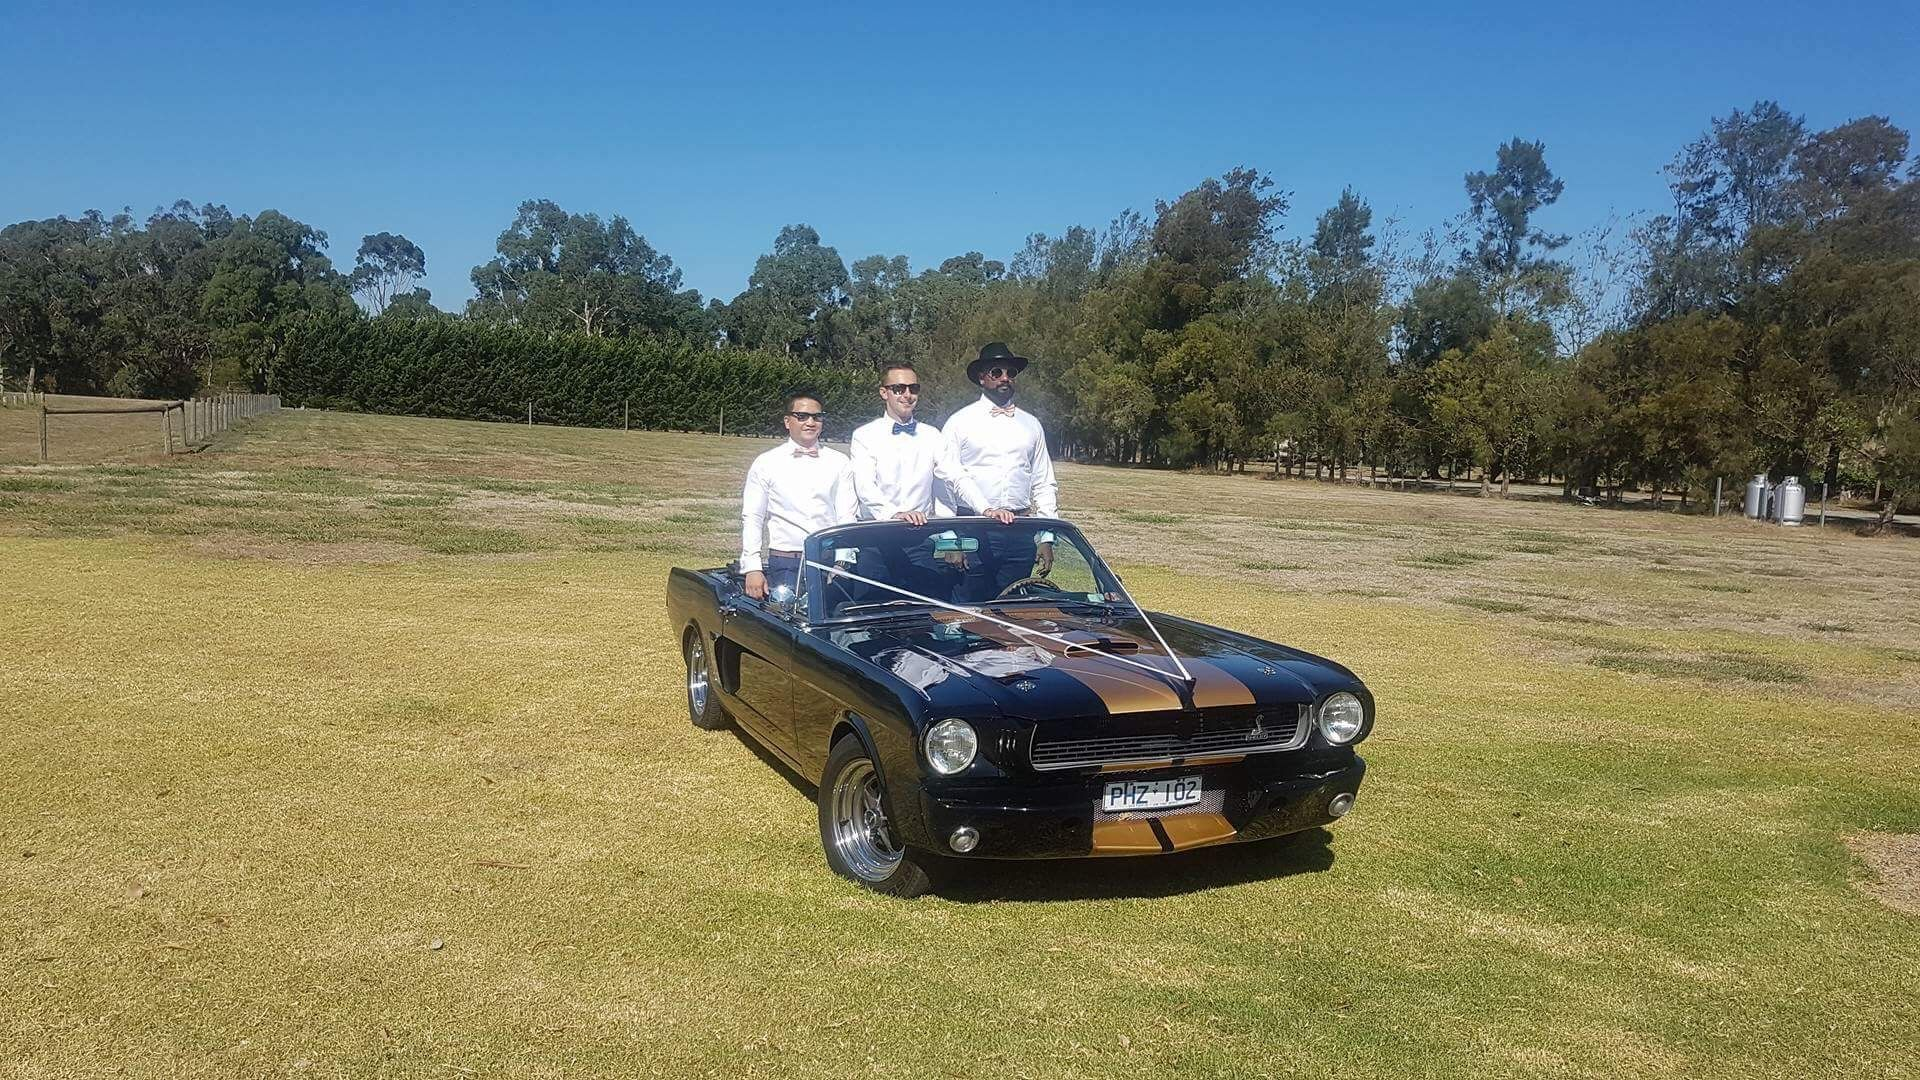 Mustangs In Black 1966 Shelby Convertible Ford Mustang At Mandala Wines And Restaurant The Yarra Valley For Ned Natalie S Wedding